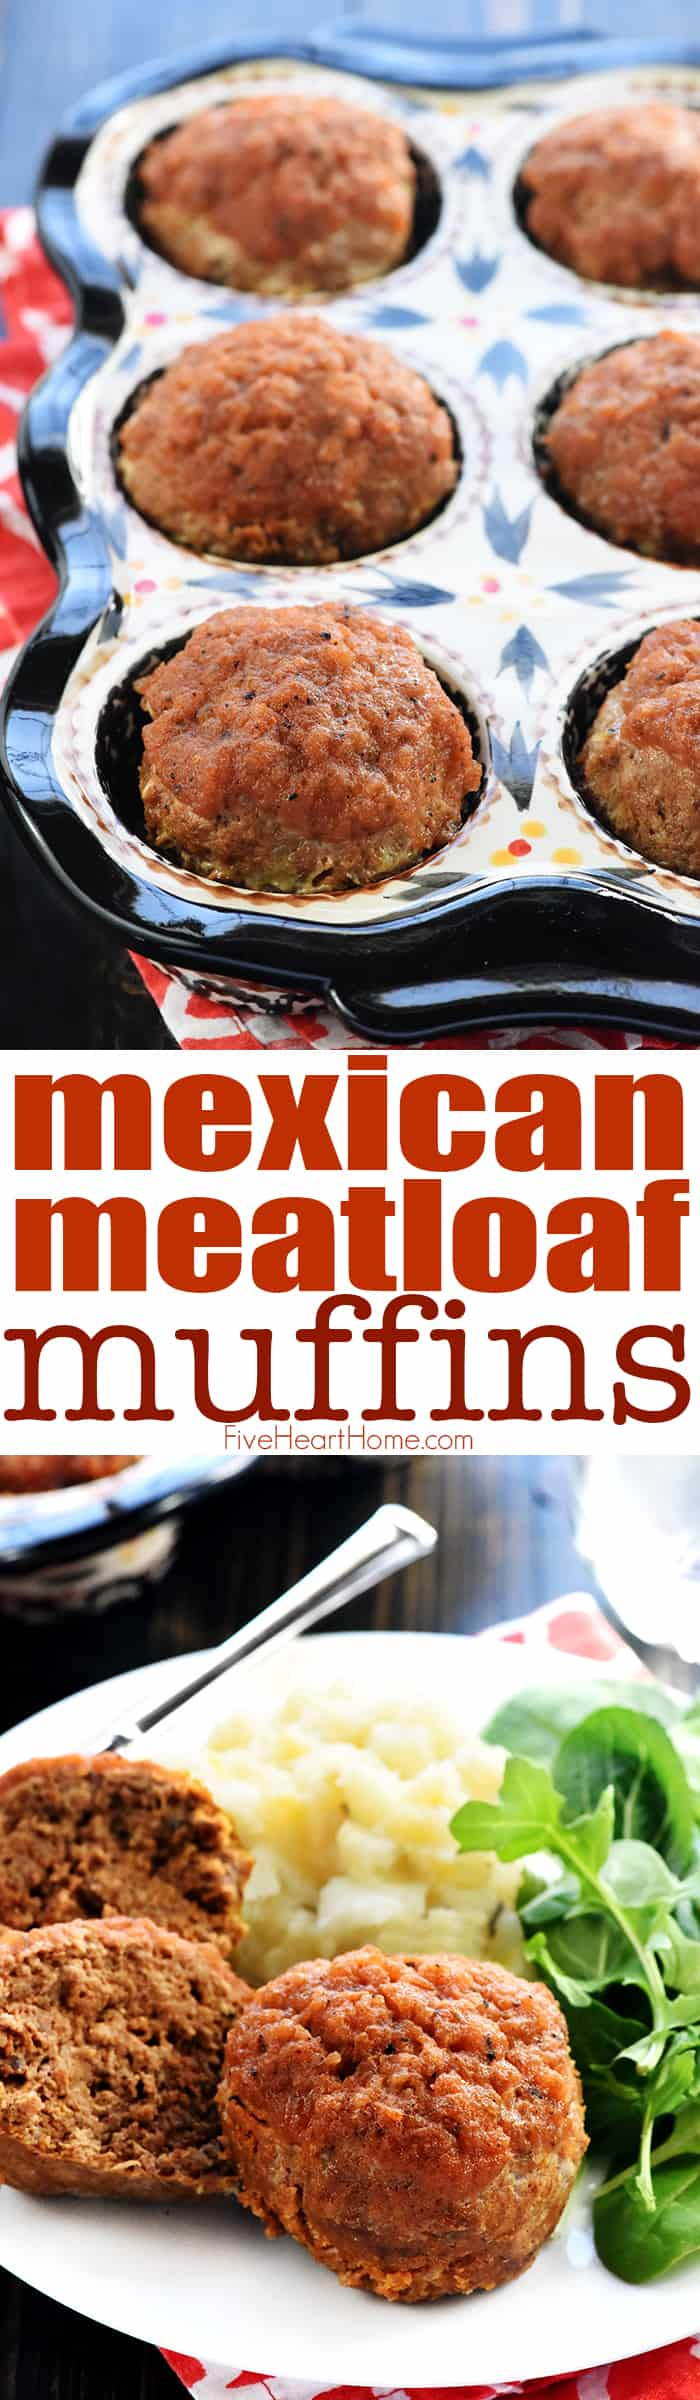 Mexican meatloaf muffins in pan and on plate collage with text overlay